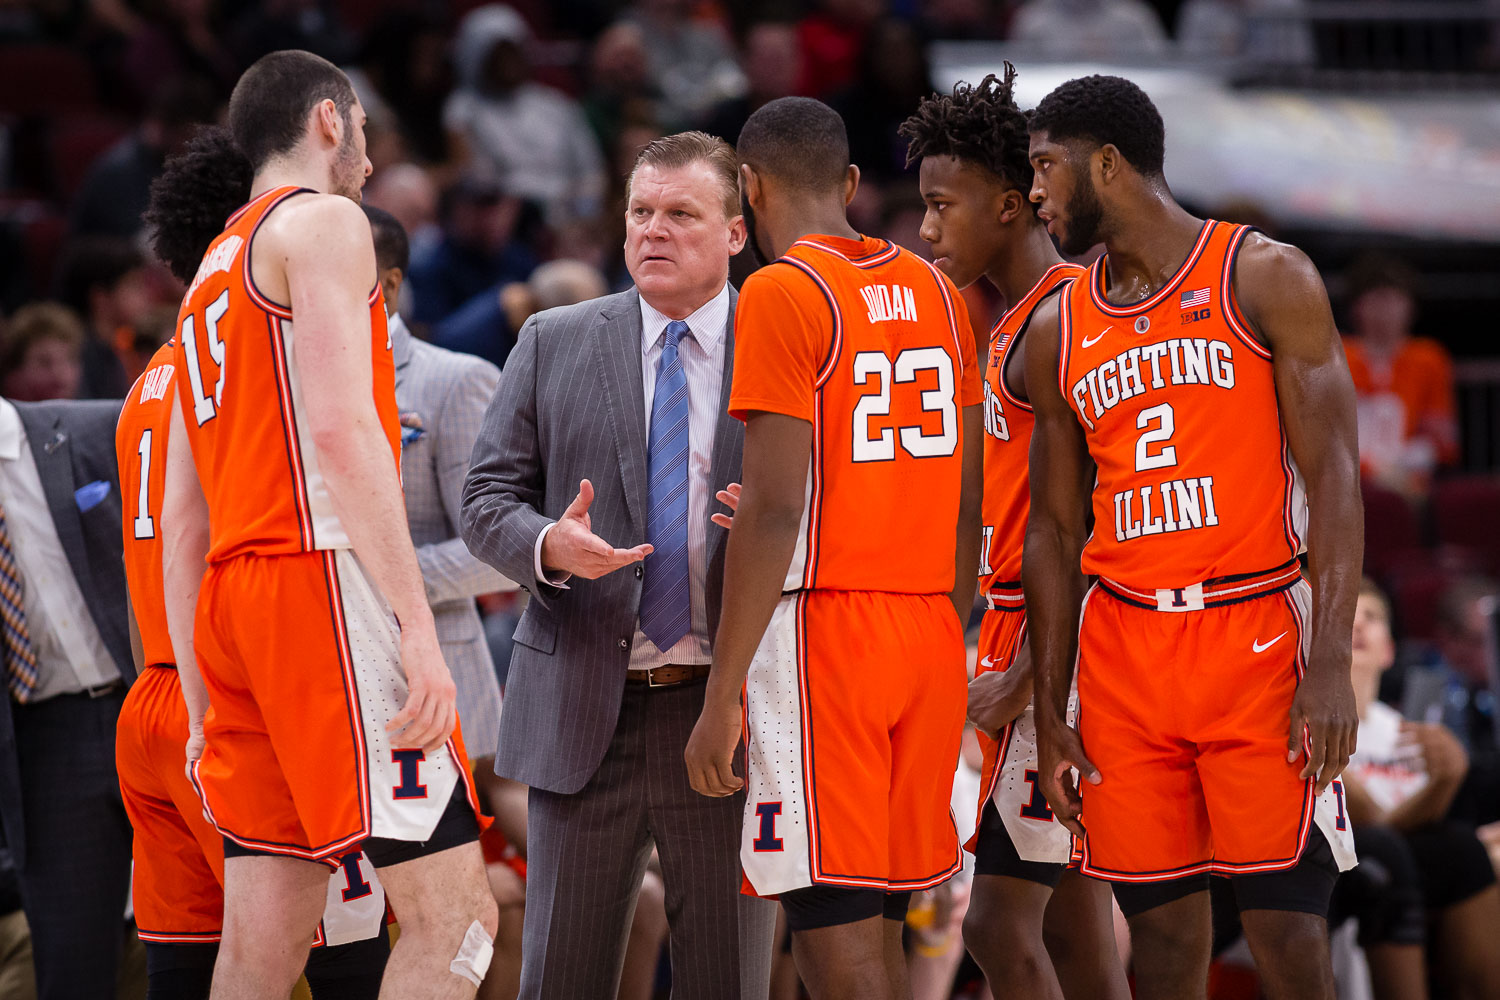 Illinois+head+coach+Brad+Underwood+talks+to+his+team+during+the+game+against+Iowa+in+the+second+round+of+the+Big+Ten+Tournament+at+the+United+Center+on+Thursday%2C+March+14%2C+2019.+The+Illini+lost+83-62.